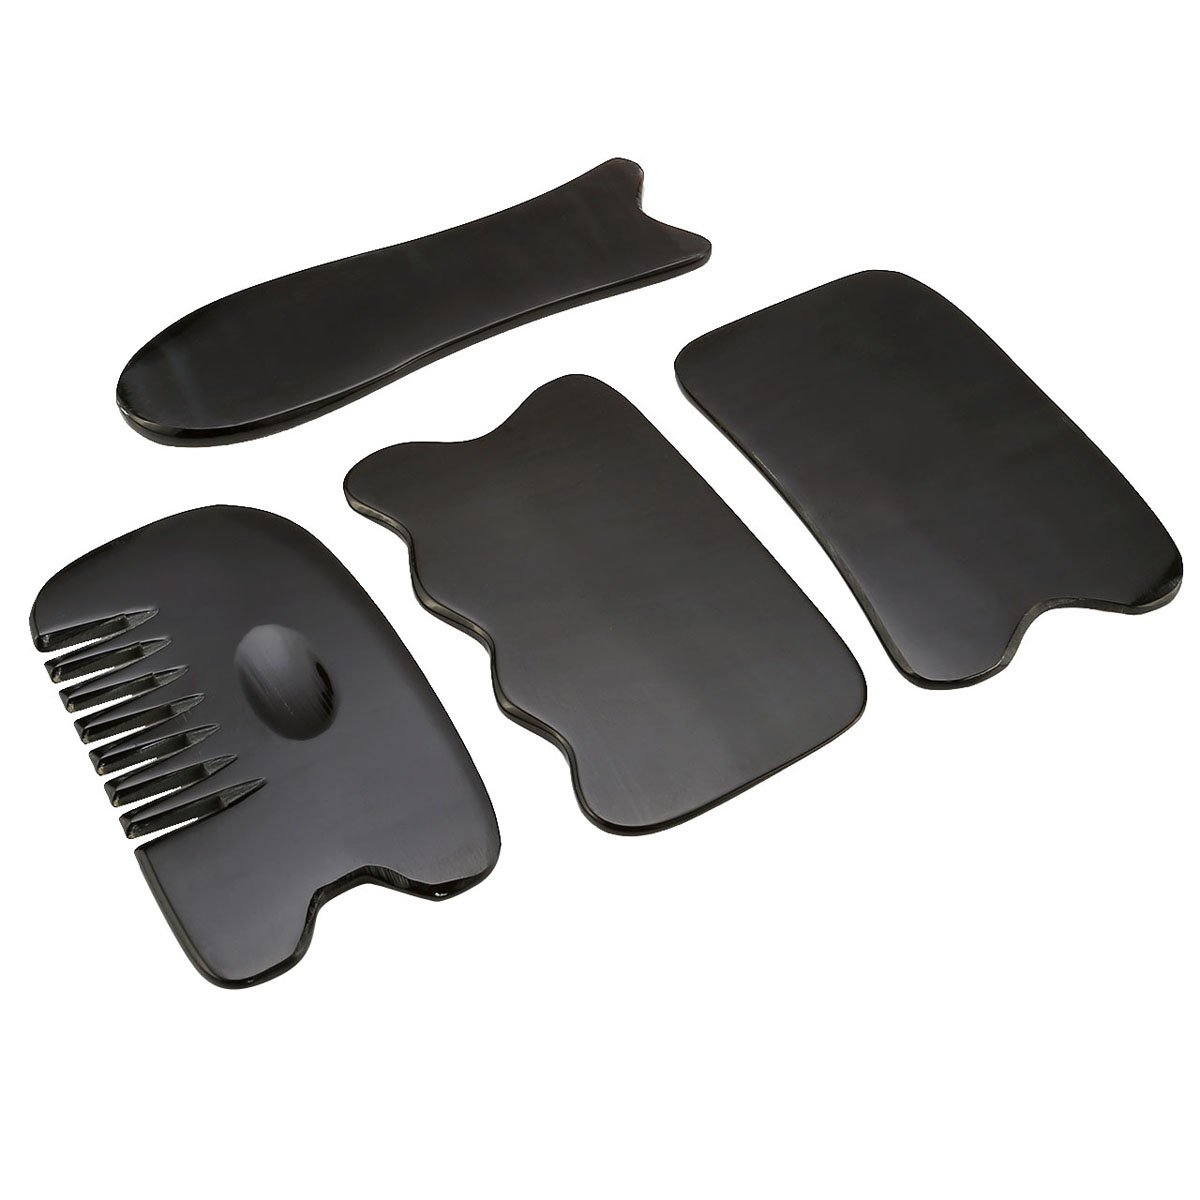 QGEM Natural Water Buffalo Horn Gua Sha Scraping Massage Tool Set of 4, 100% Hand Made Guasha Board Stick for Acupuncture Point Therapy, Perfect Therapy Tool for Graston Technique-#3